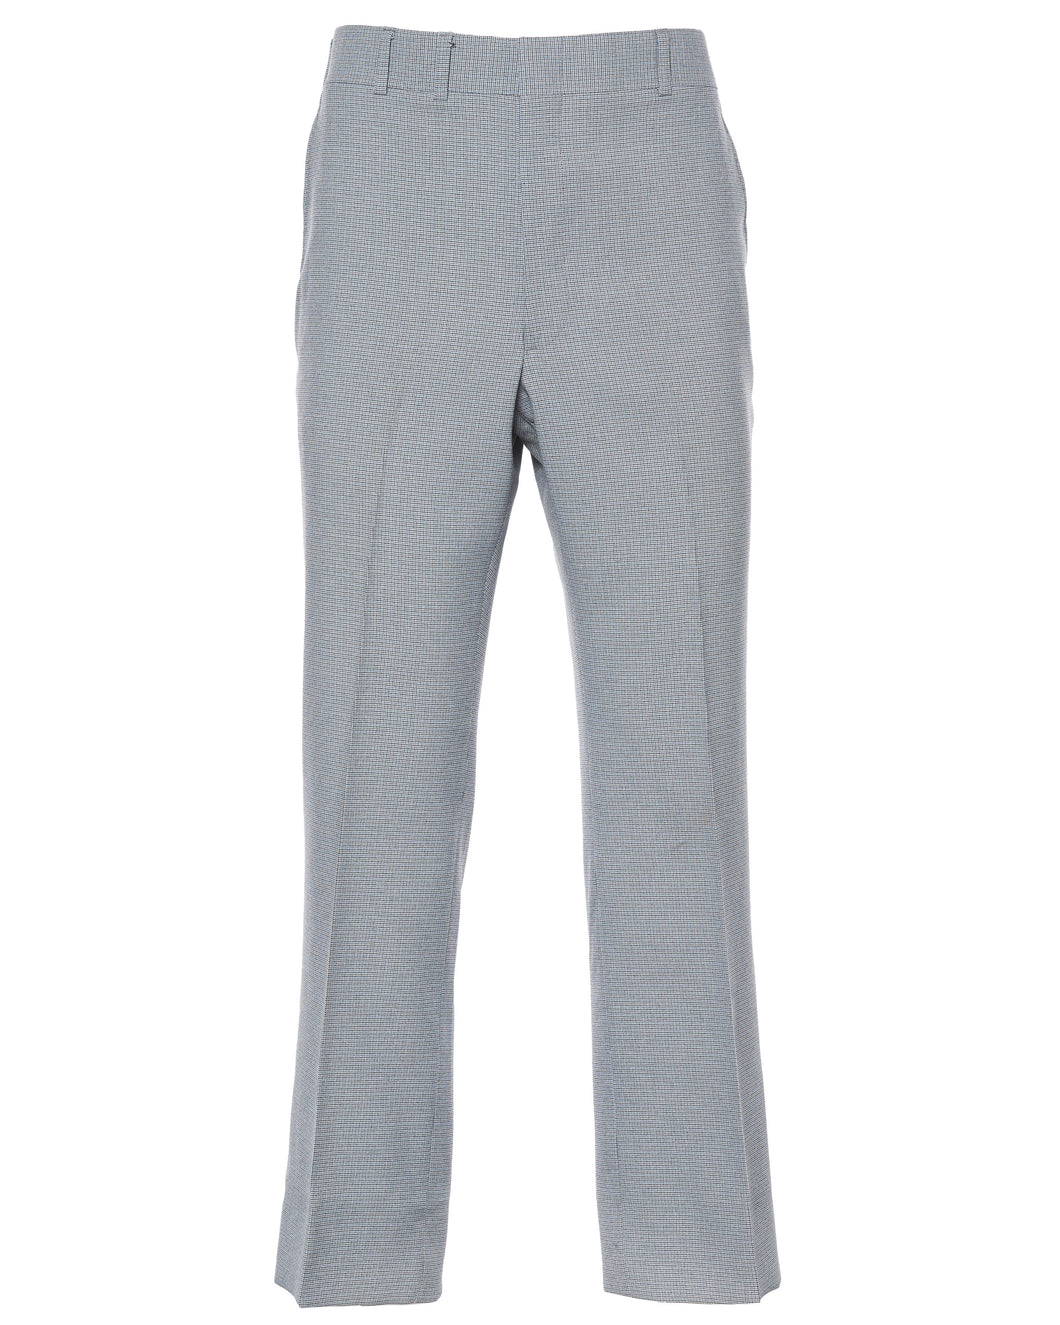 FLAT FRONT TROUSER - MEN'S SIZE 36